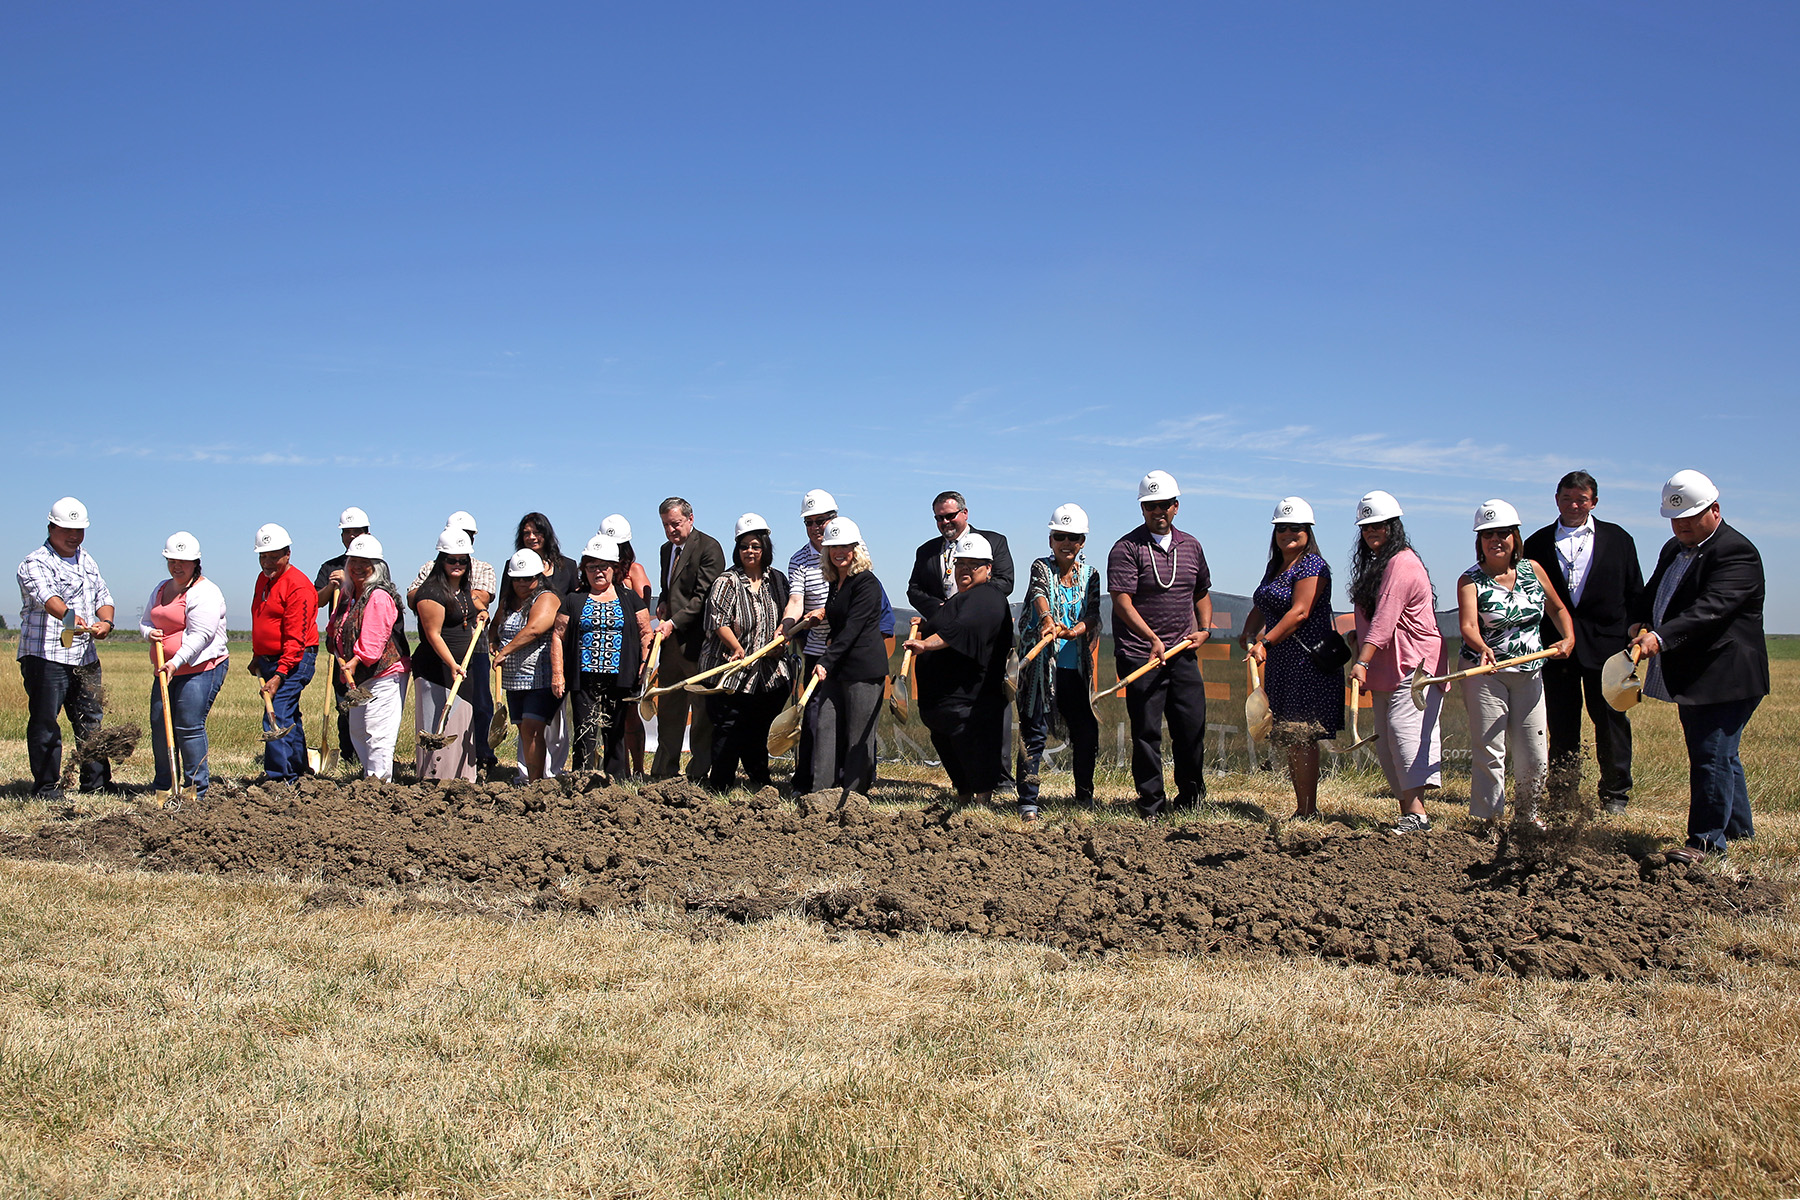 The Indian Health Service held a ceremonial groundbreaking on June 20 for a new Youth Regional Treatment Center in Davis, California.